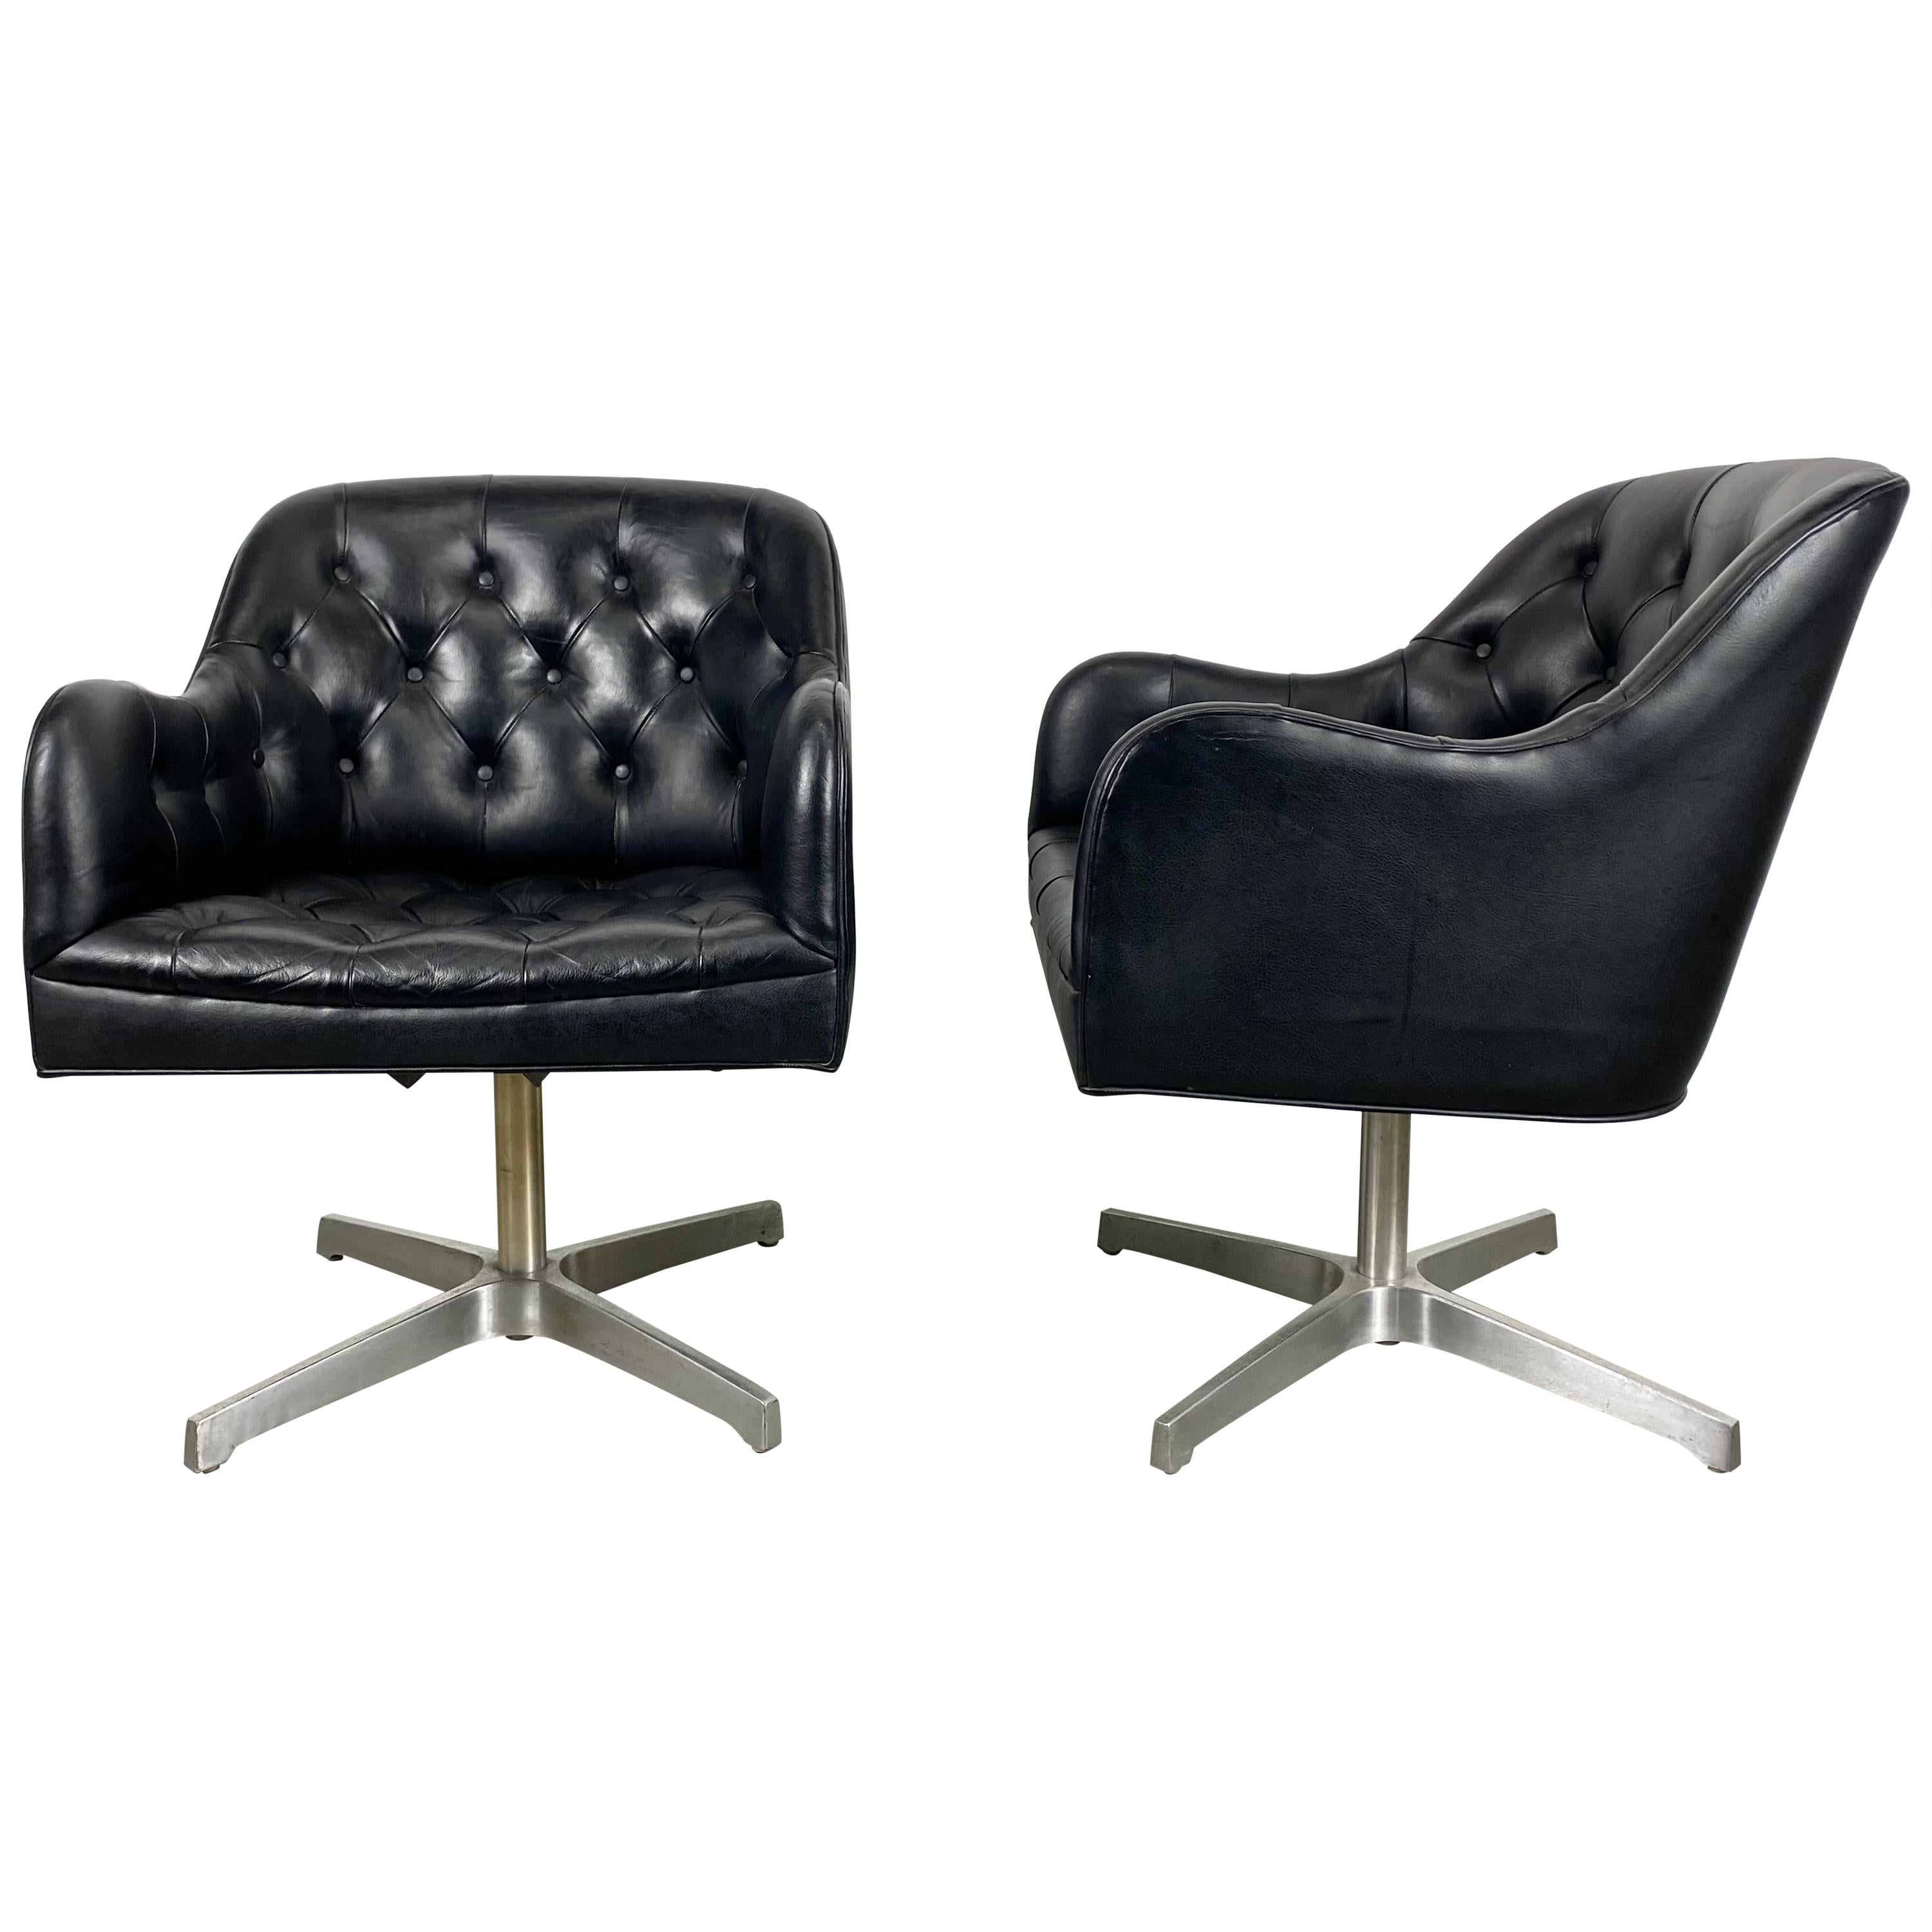 Stunning Black Button Tufted Leather Swivel Chairs, Jens Risom for Marble, Pair